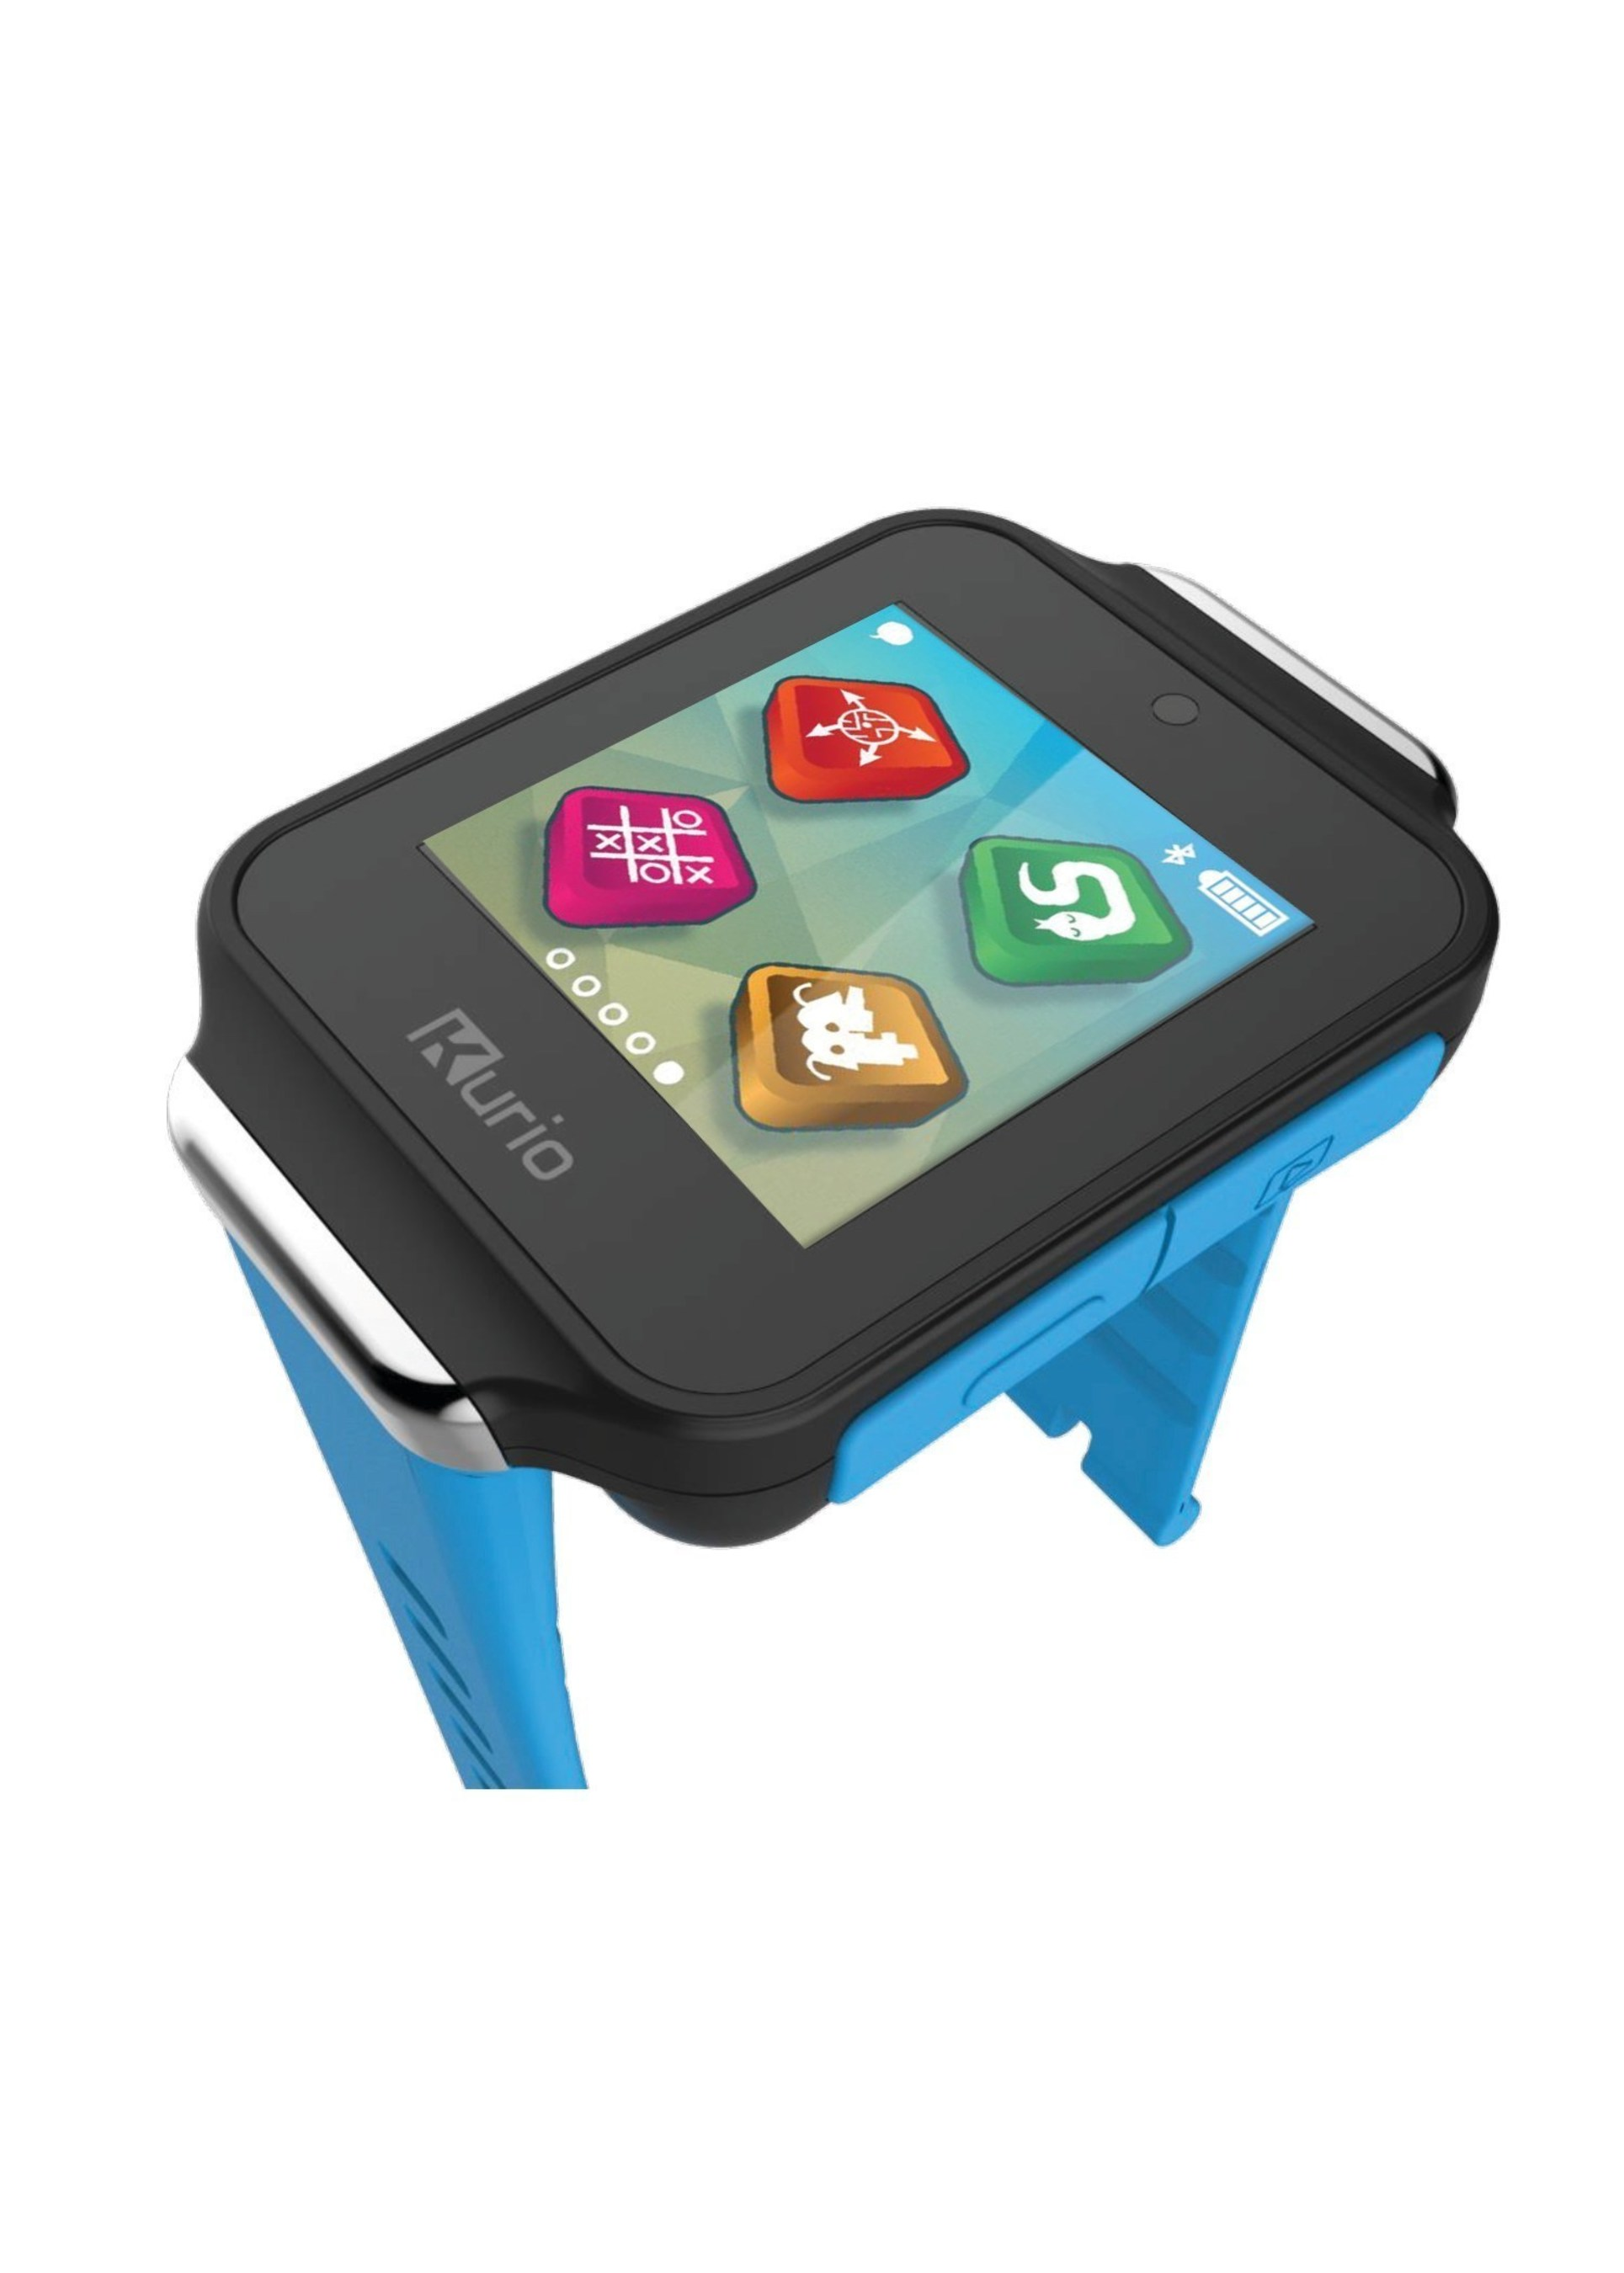 099ebe73b20c52 KD Group's Kurio Watch is a real, working Bluetooth smartwatch designed  specifically for kids ages